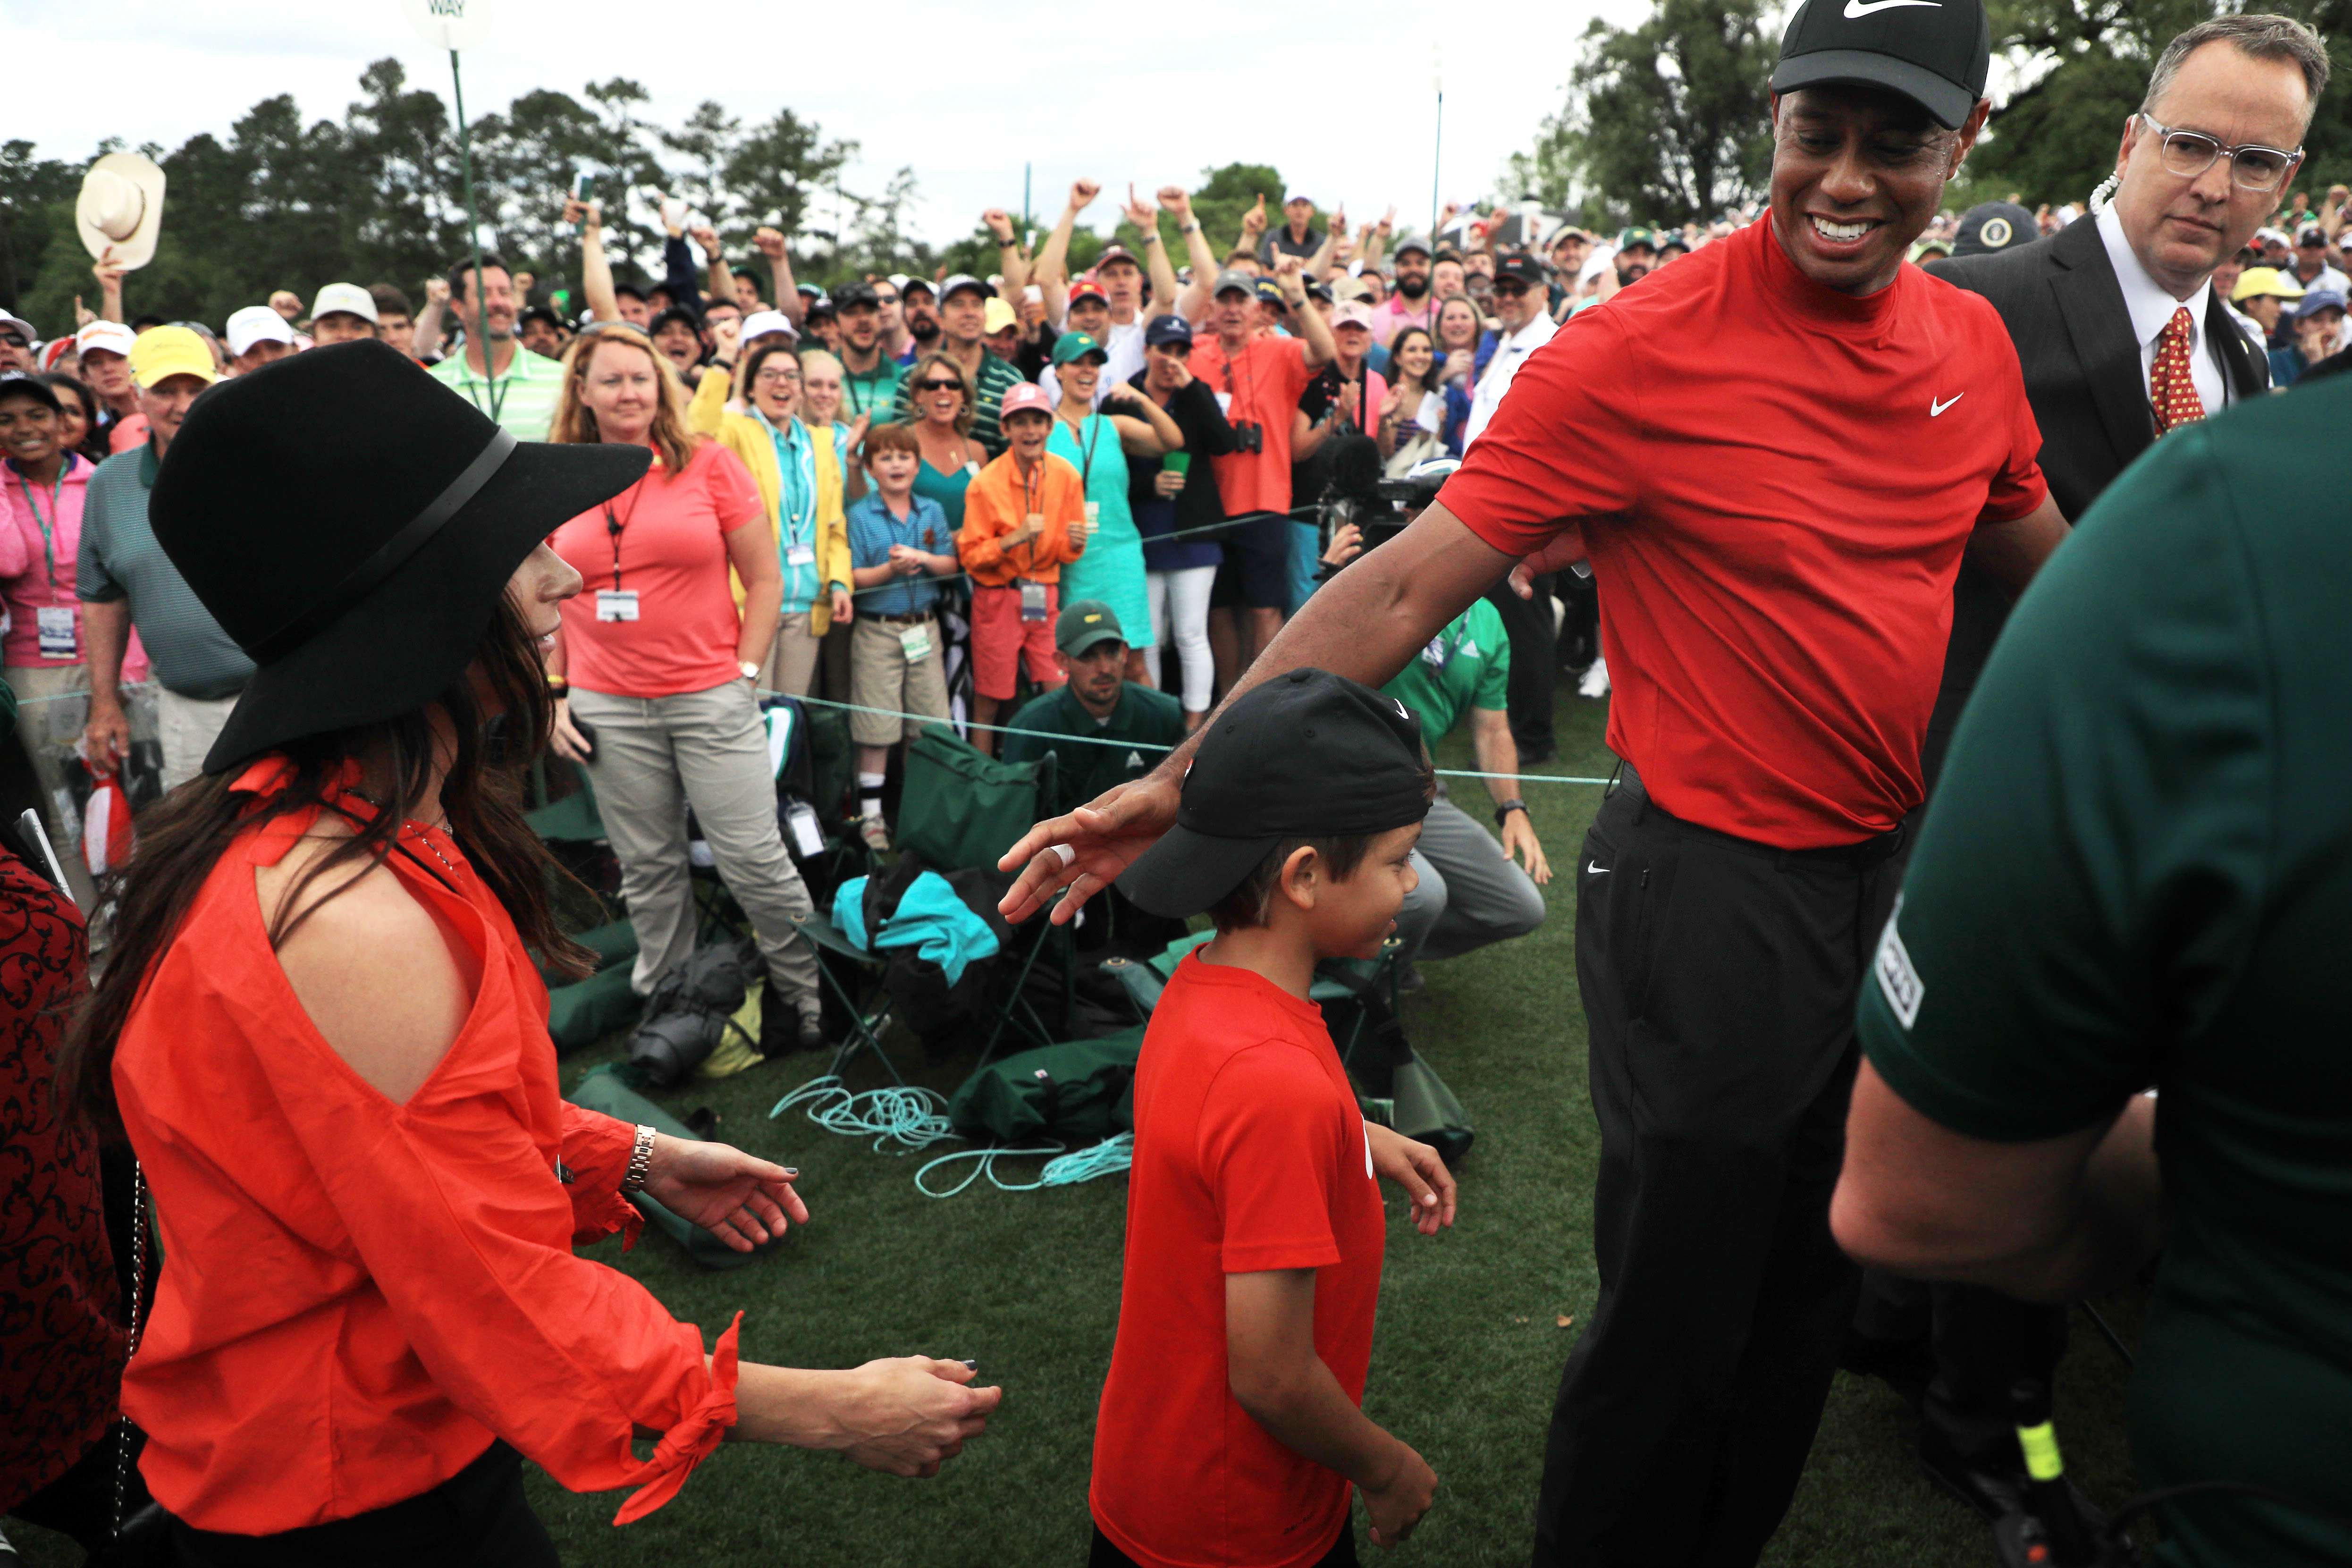 dc64d6e5 Tiger Woods hugged his son Charlie at Masters, where he once hugged his  father, Earl Woods - The Washington Post